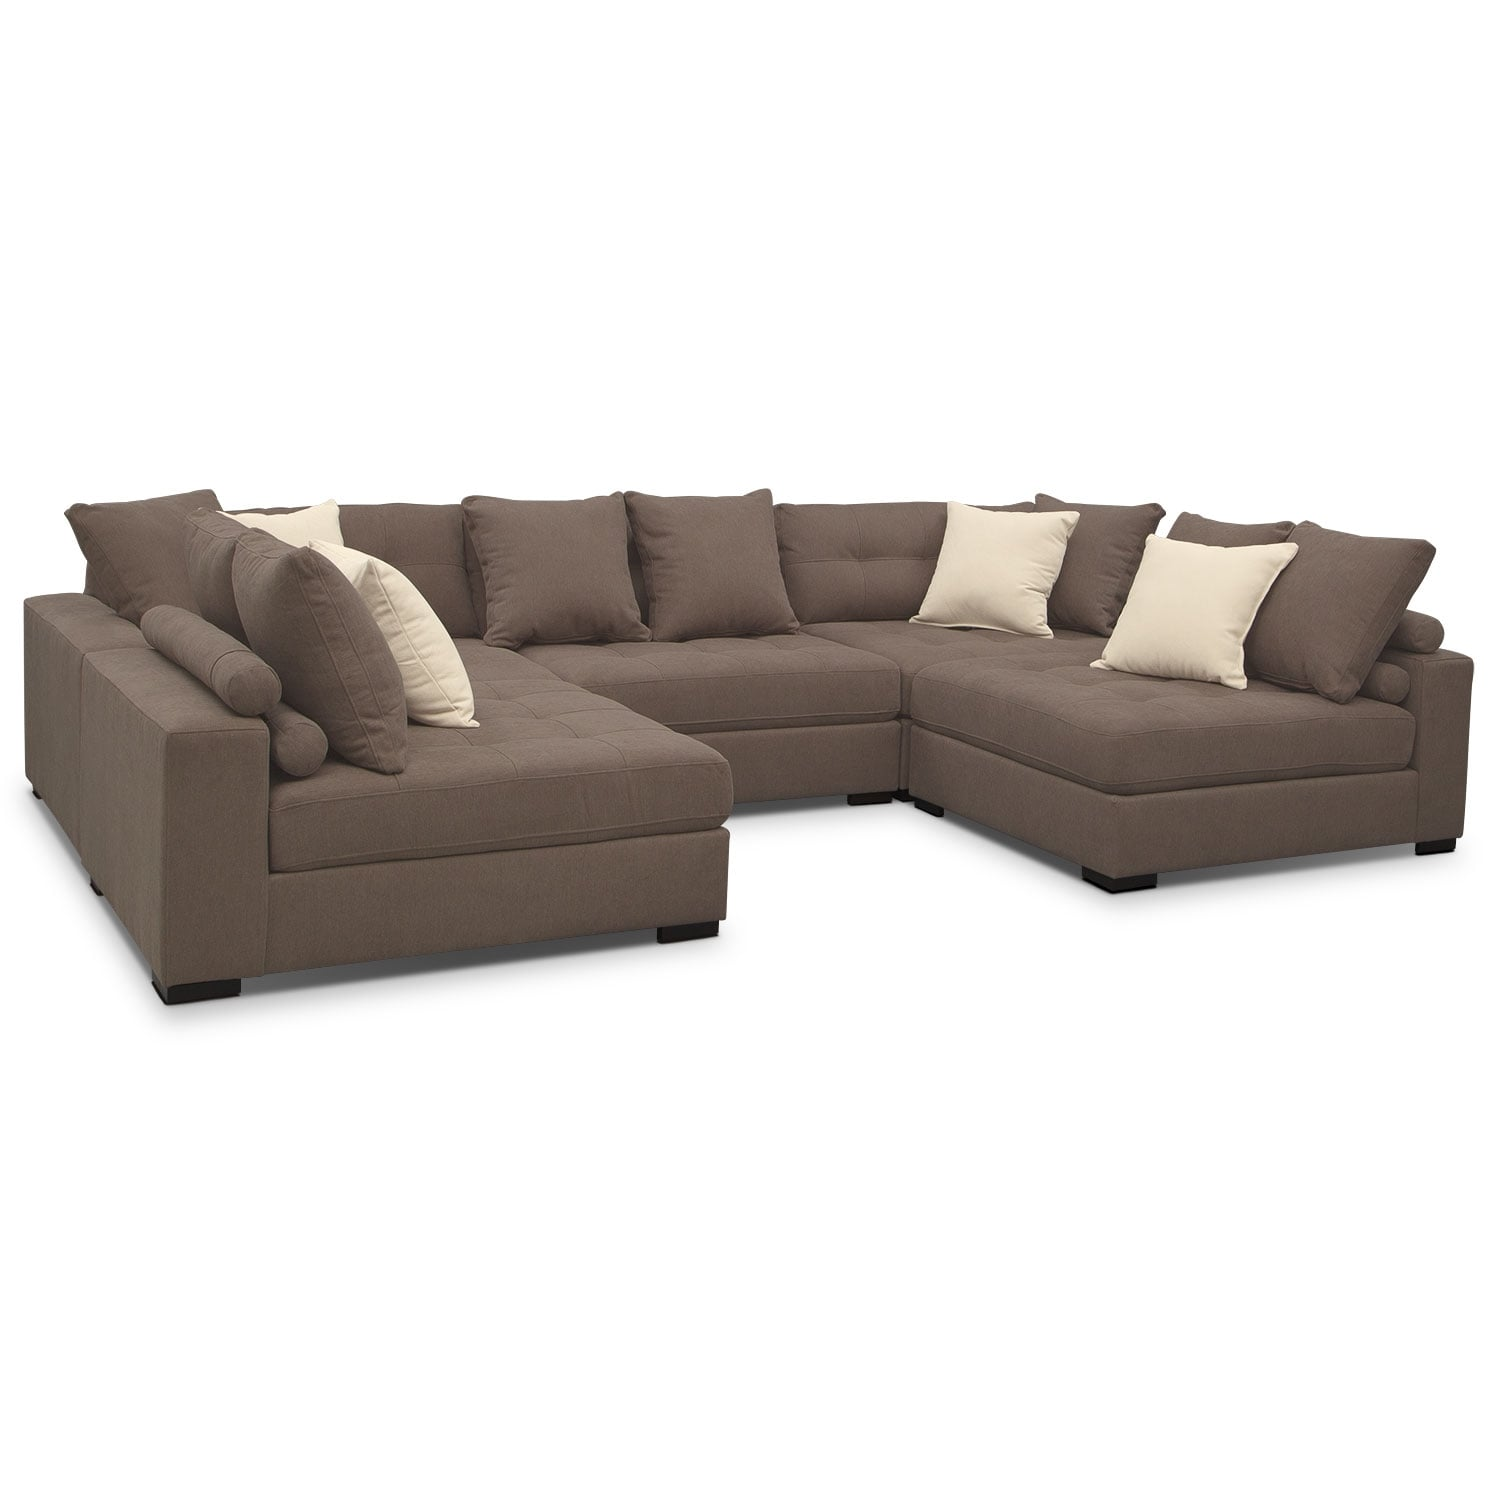 Venti 5-Piece Sectional - Mocha